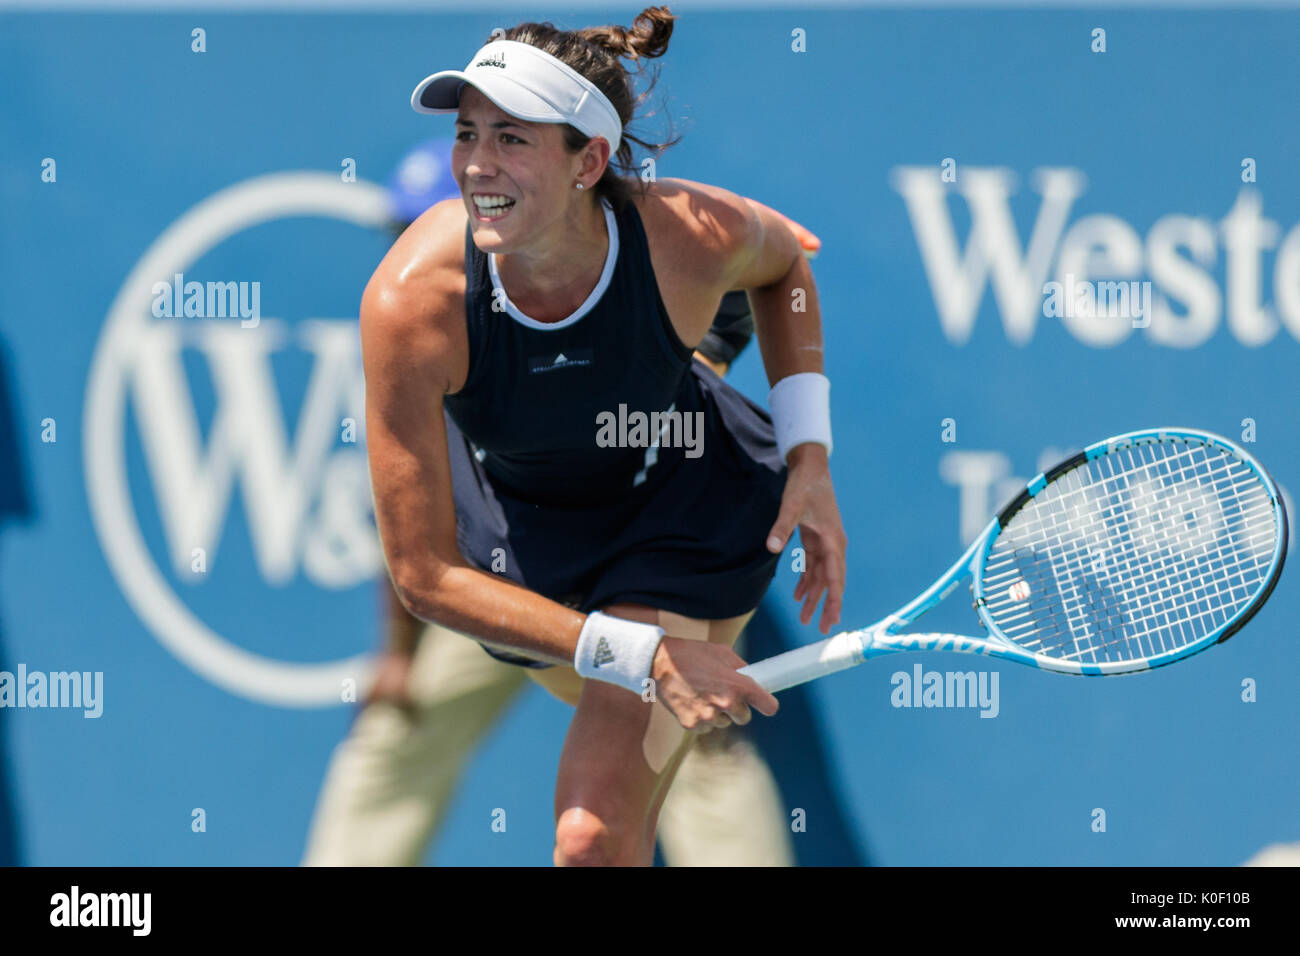 August 20, 2017: Garbine Muguruza (ESP) in action during the final match at the 2017 Western & Southern Open tennis tournament being played at the Linder Family Tennis Center in Mason, Ohio. Adam Lacy/CSM - Stock Image